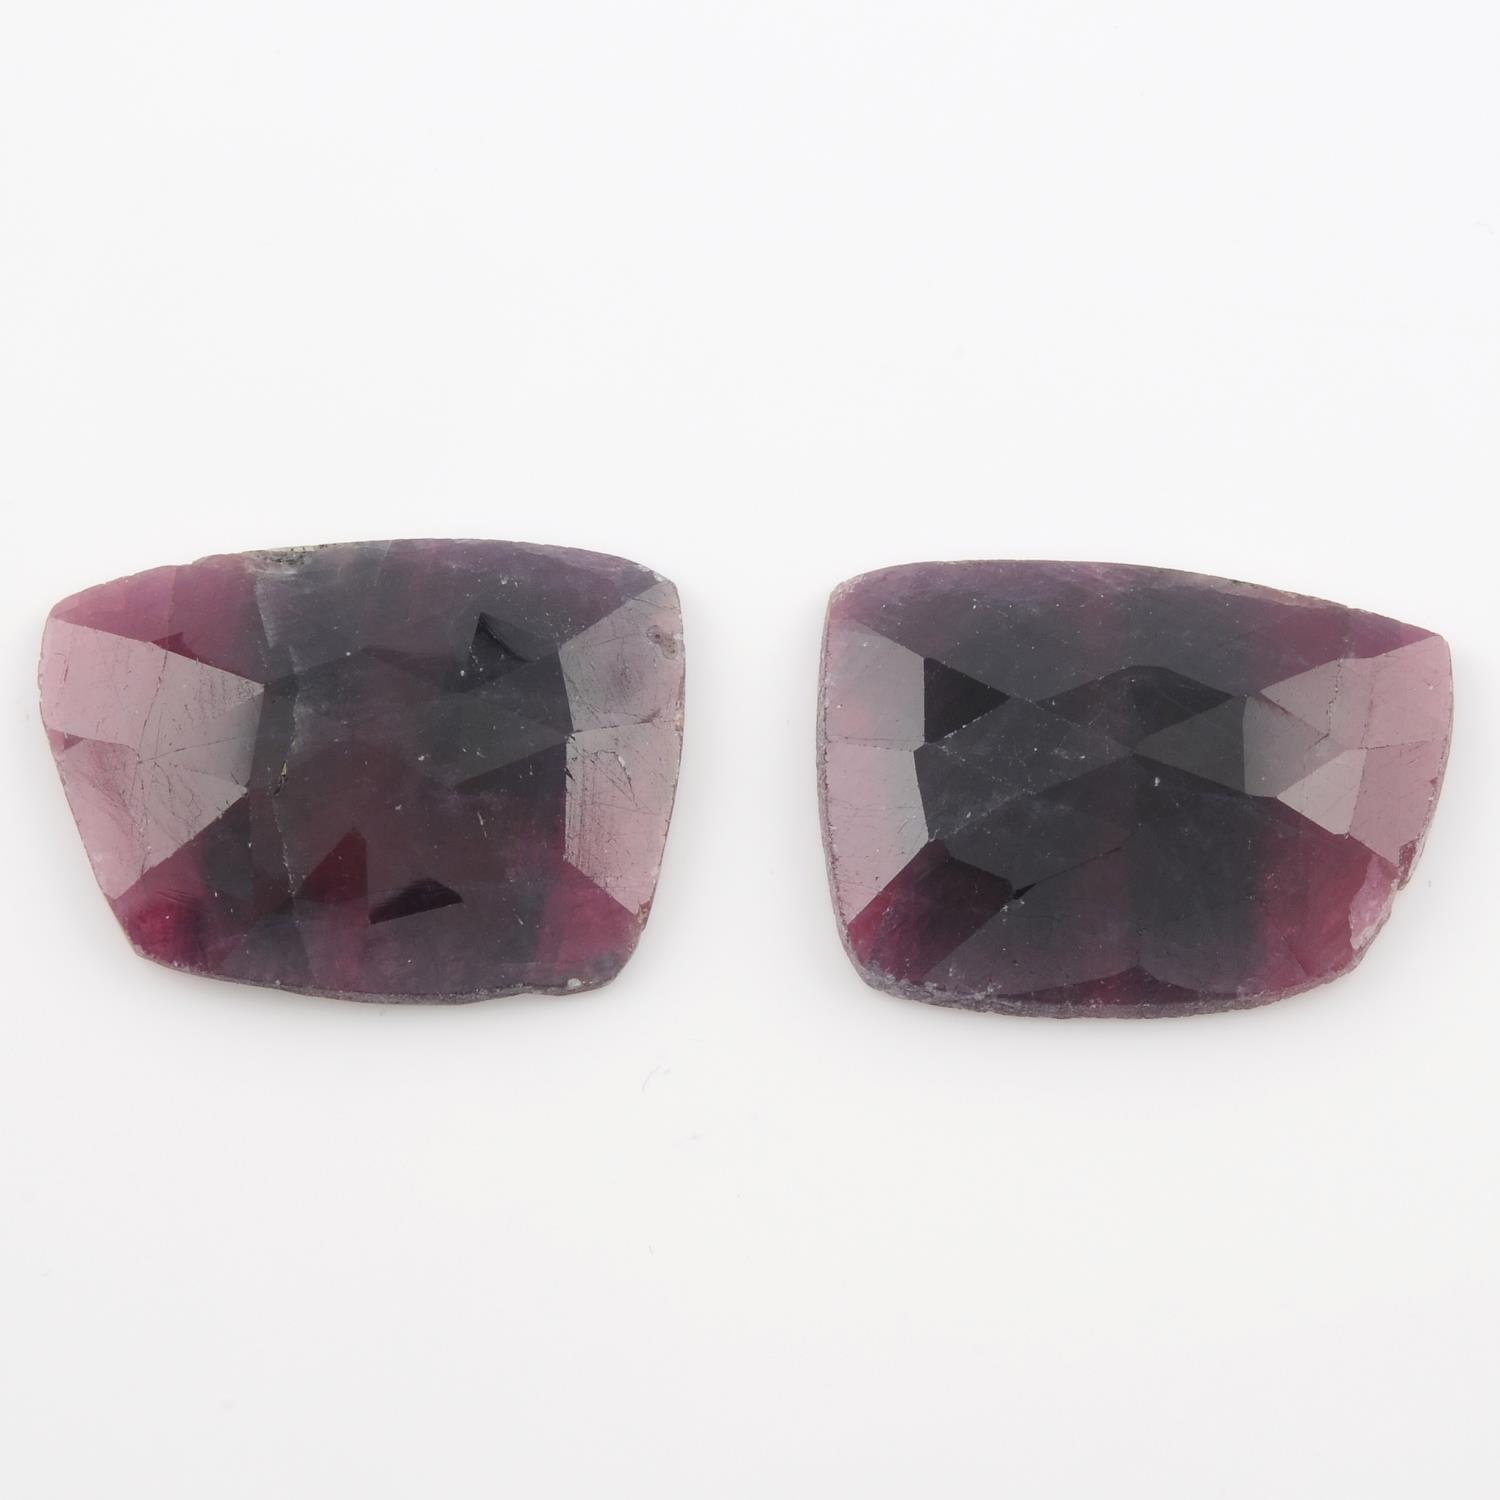 A selection of gemstones,